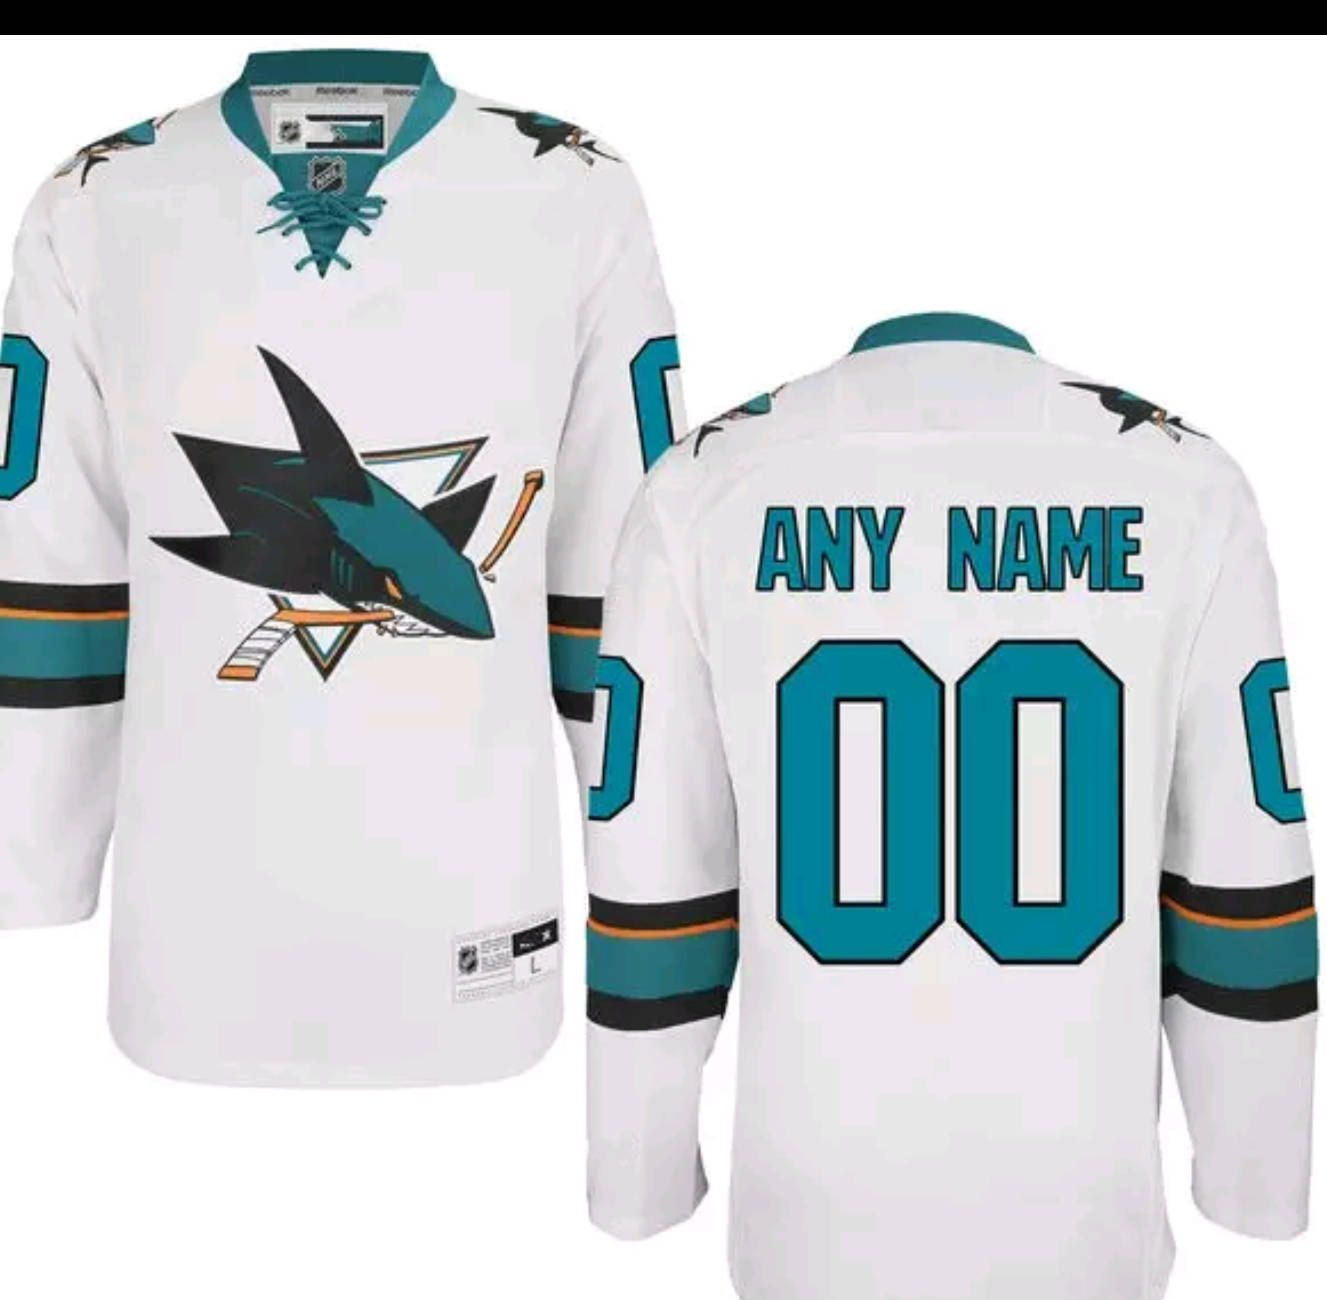 San Jose Sharks NHL Customizable Mens Women Youth Premier Jersey M-XXXL  Plain or Customized With ANY Name Number 1a4f194f4